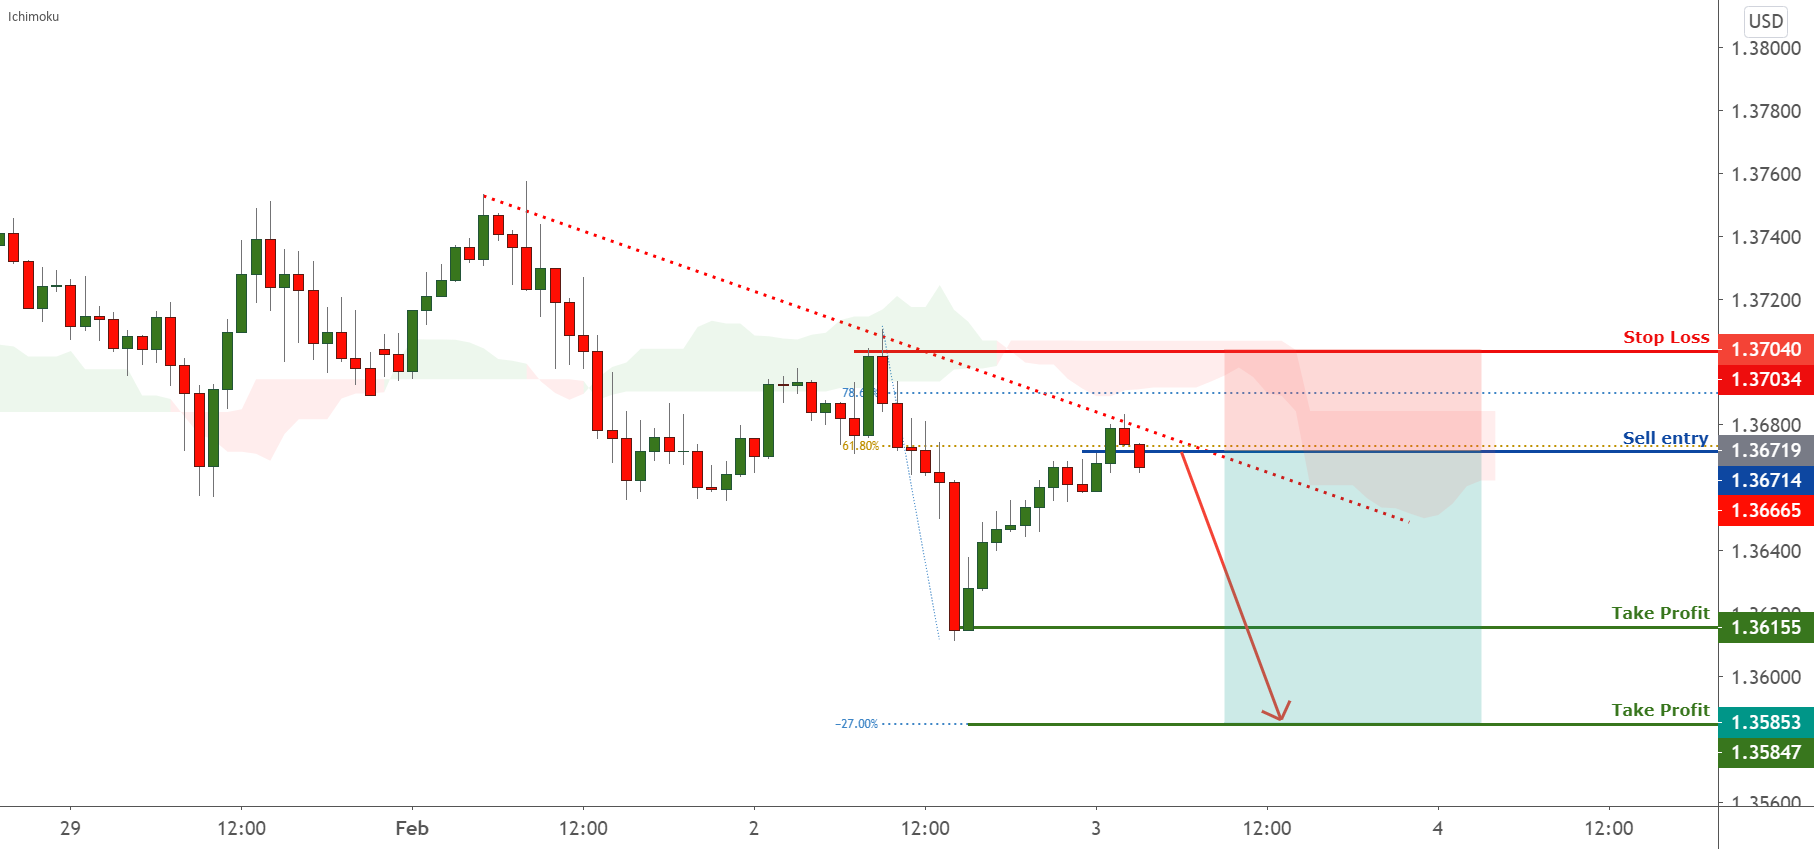 GBPUSD to drop further from the trendline ! for FX:GBPUSD by FXCM